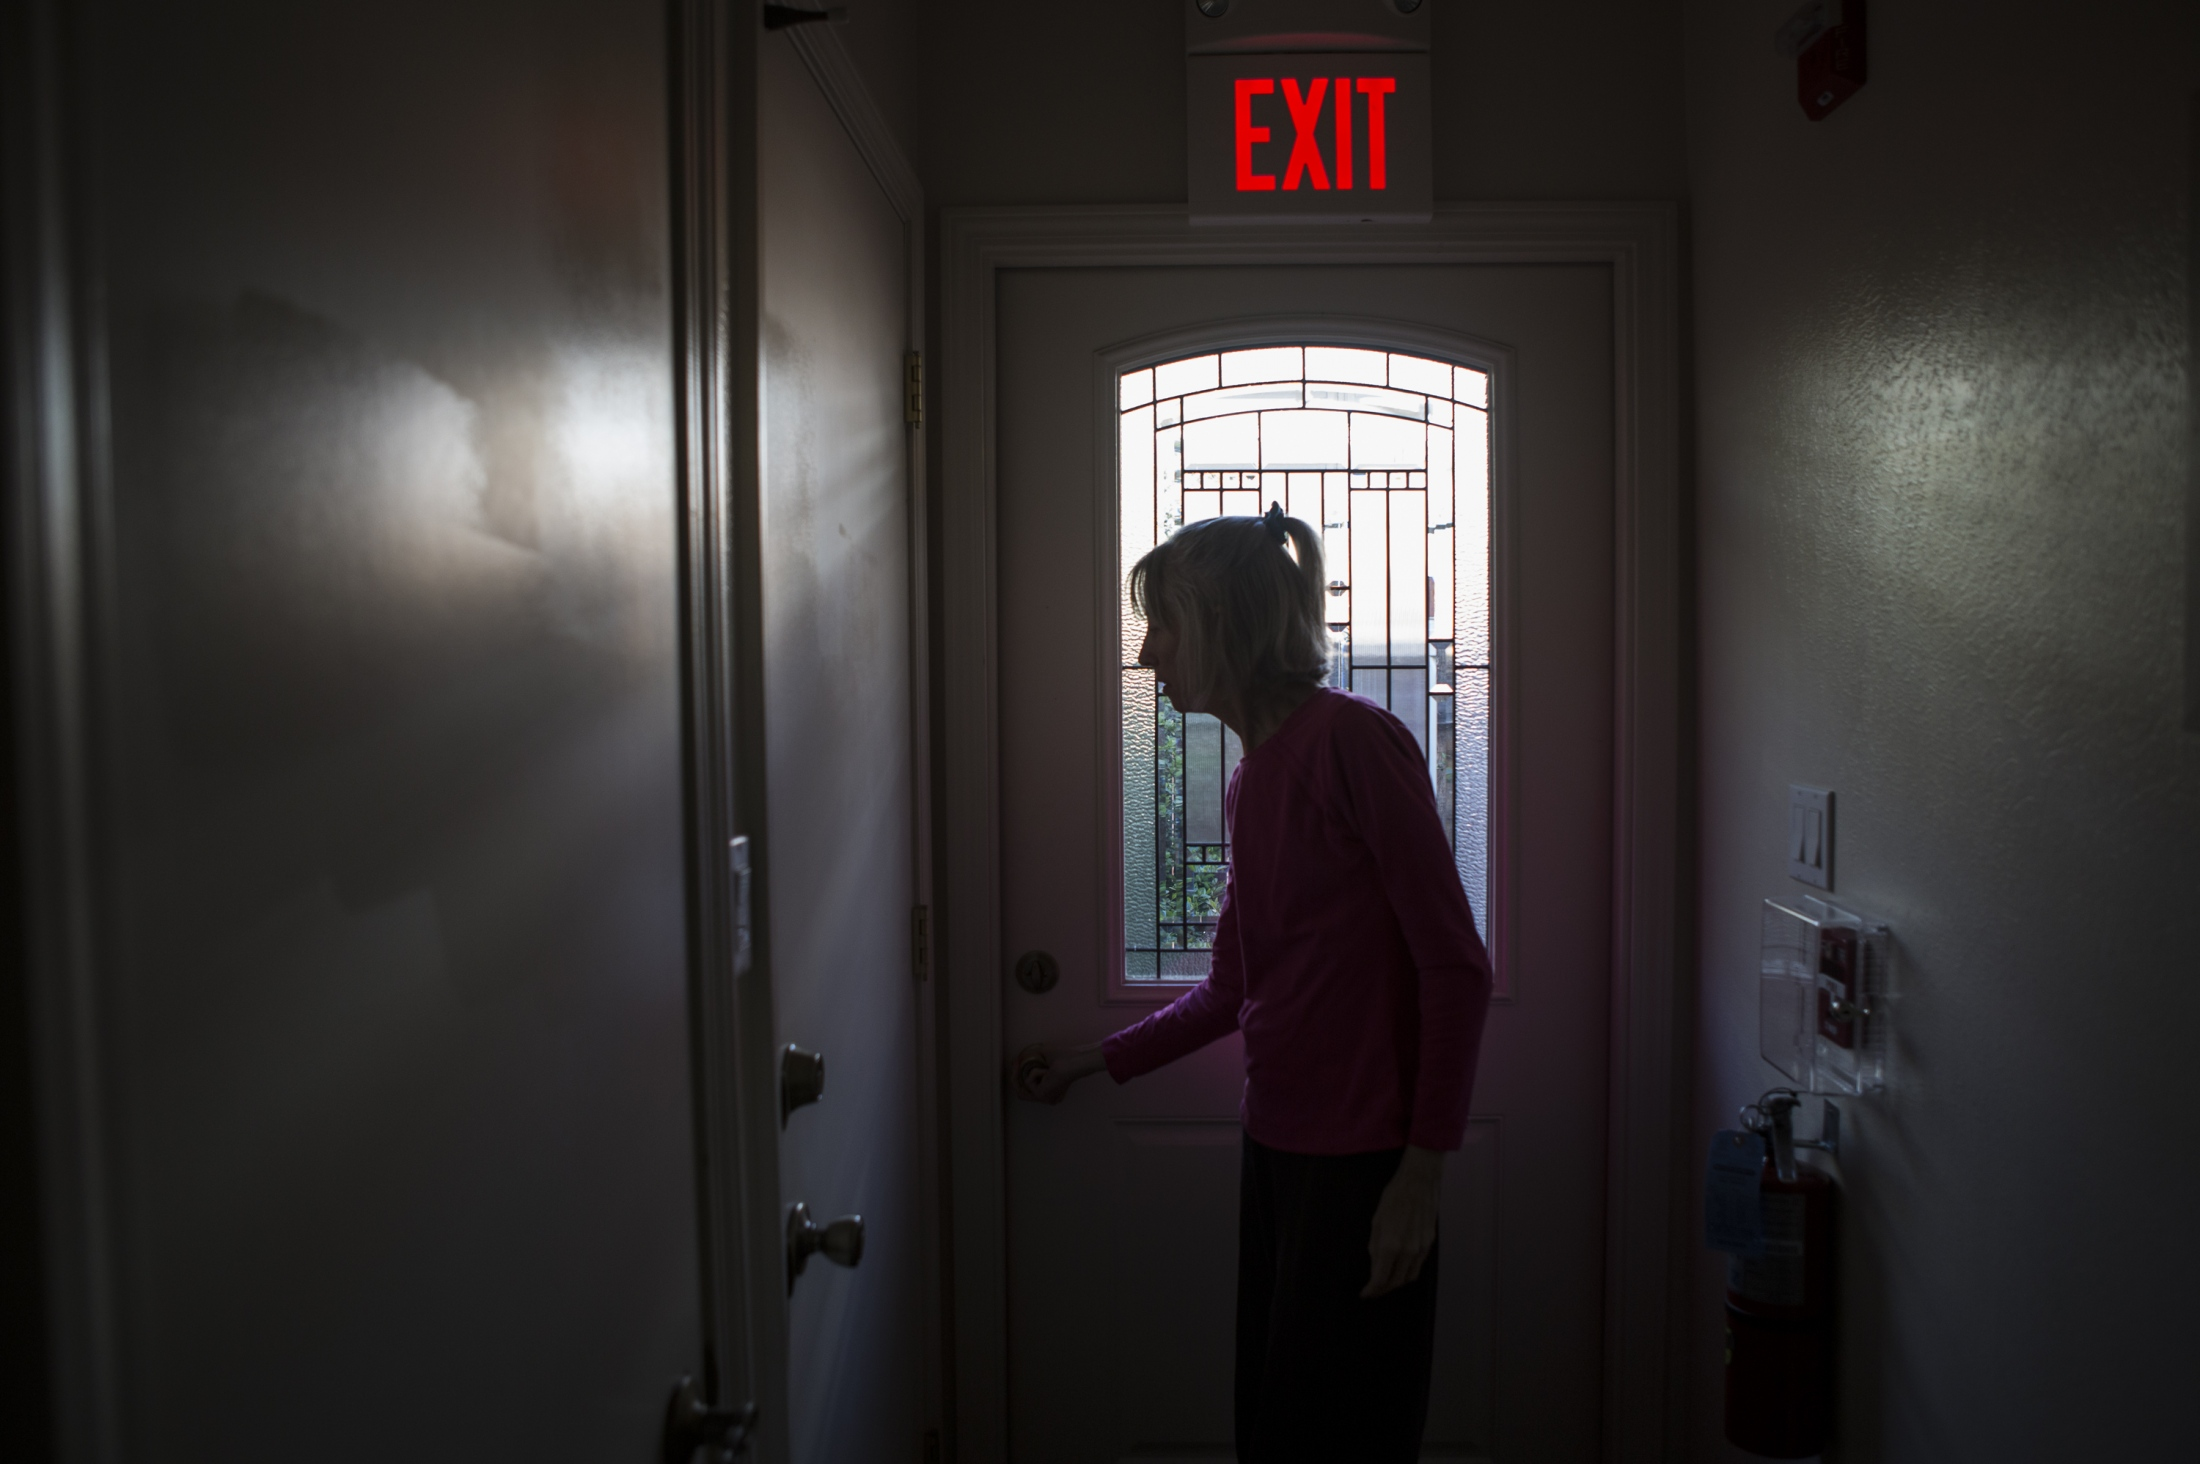 While aimlessly wandering, she goes around tugging and turning on the doorknobs attempting to open them. Nancy was given five to eight years to live after her official diagnosis of younger-onset Alzheimer's disease. She has been suffering from the disease for nearly eight years.